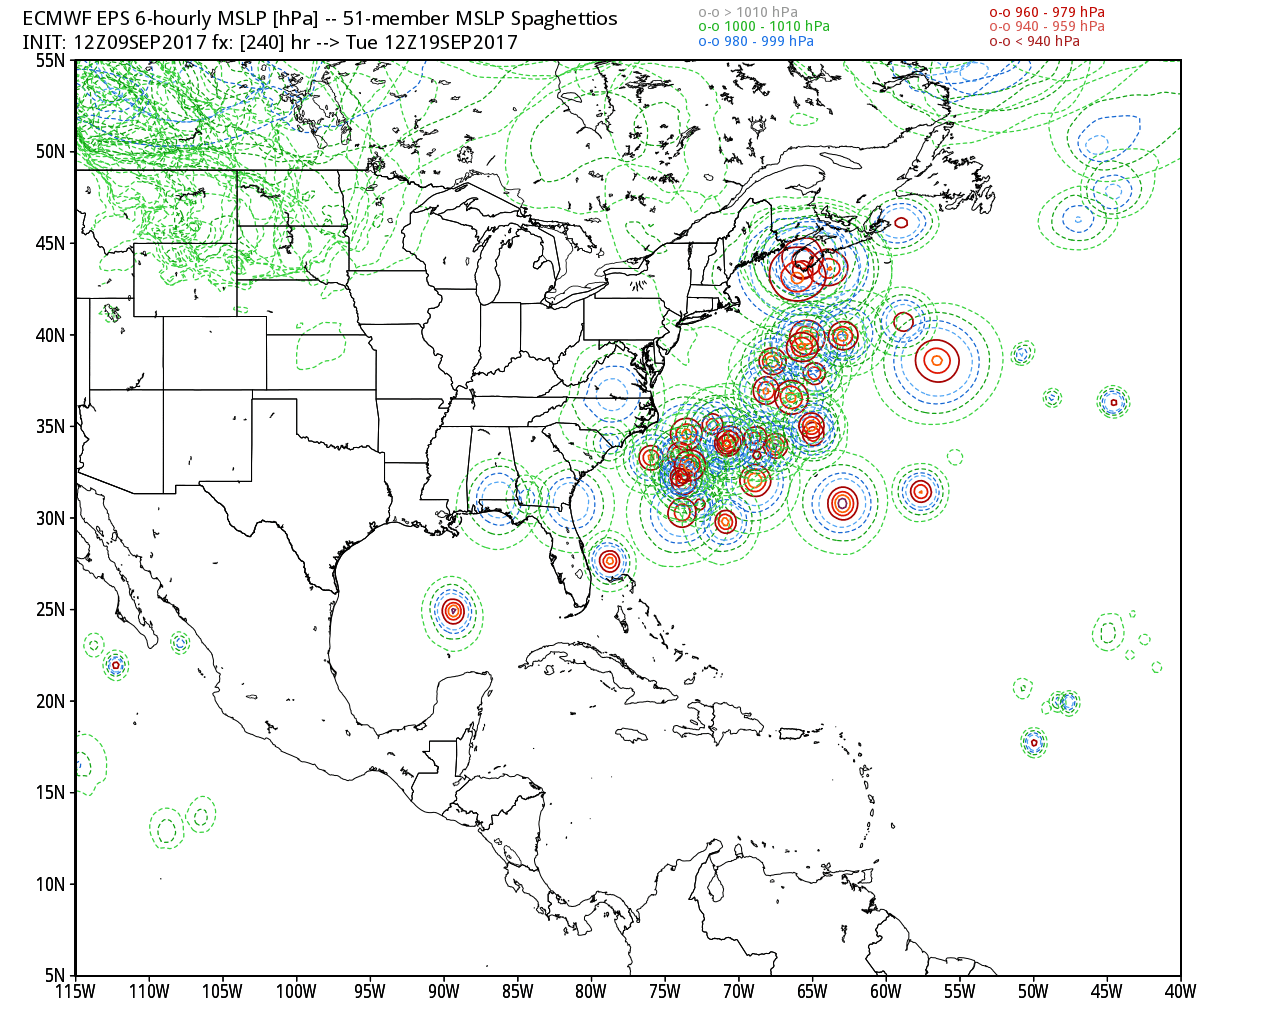 Saturday 12z European model ensemble forecast for Hurricane Jose.